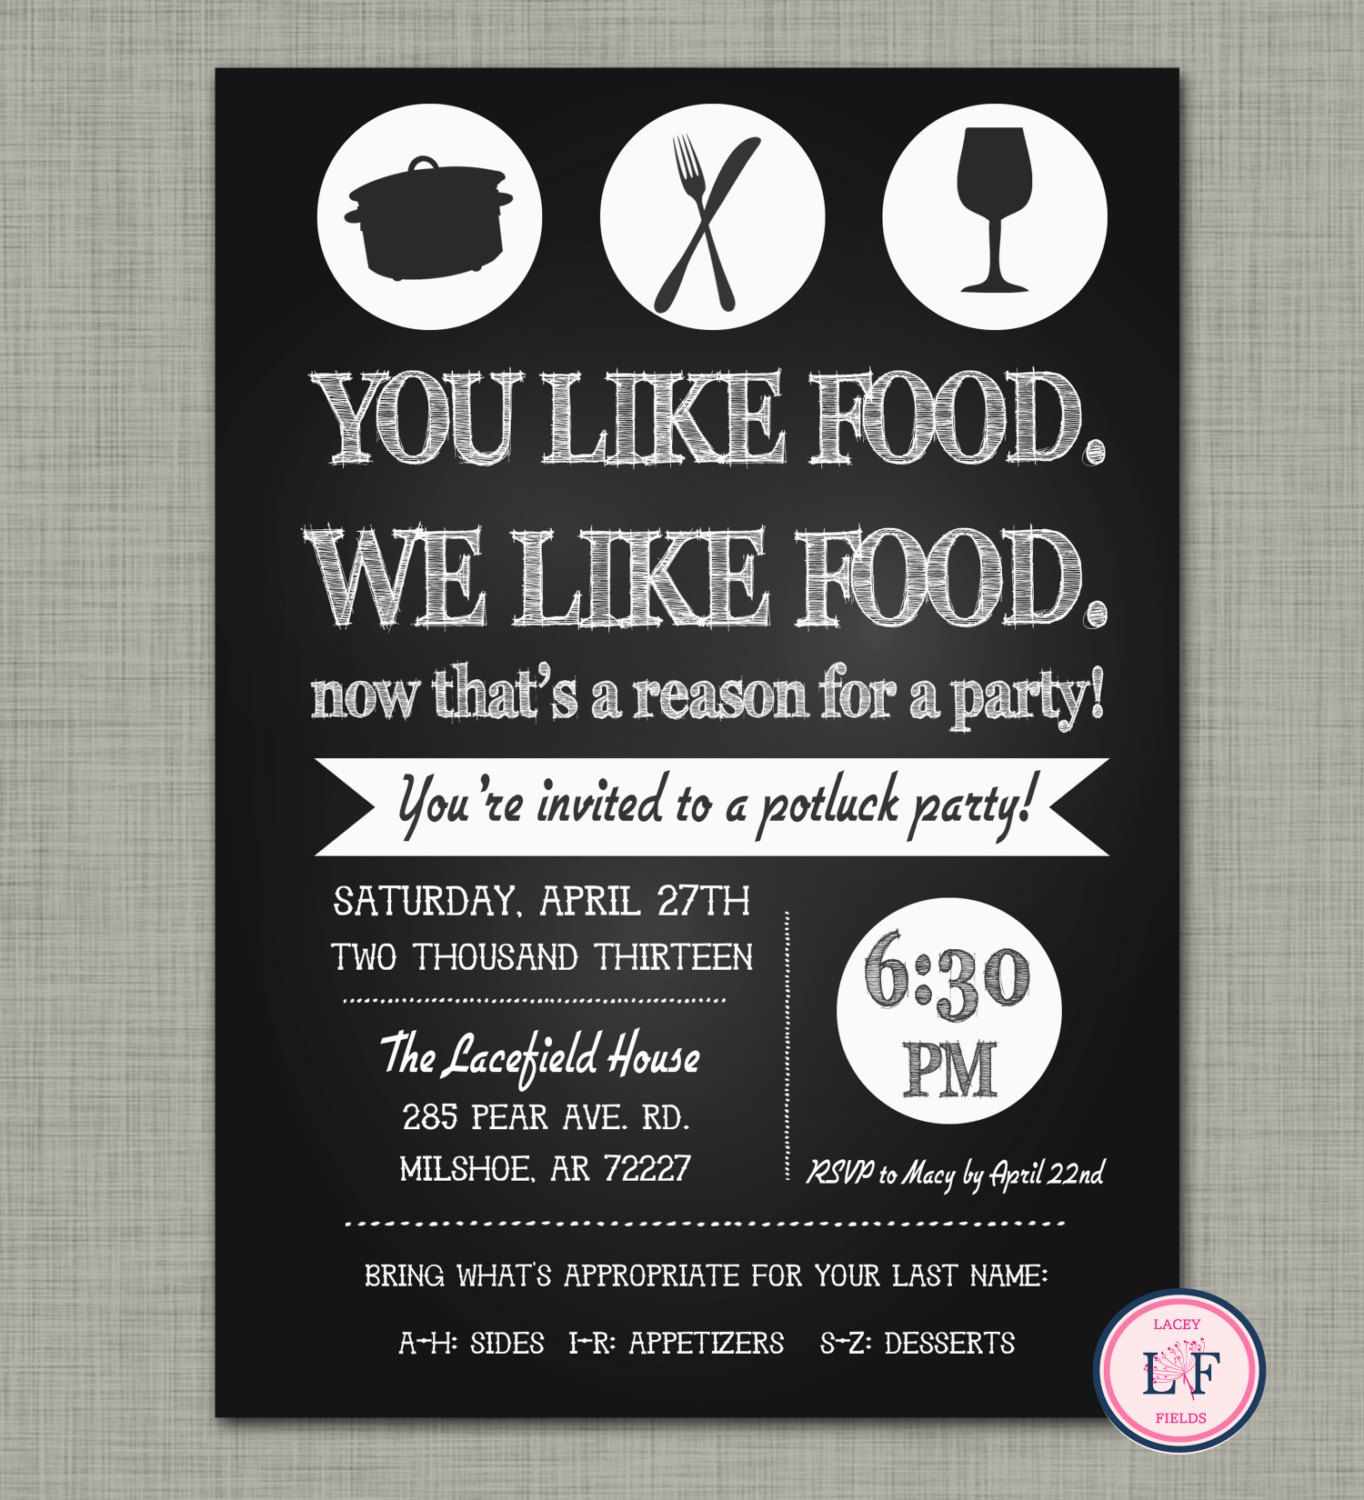 Chalkboard pot luck party invite just because party chalkboard pot luck party invite just because party housewarming party dinner party invitation kitchen party kitchen shower invite stopboris Image collections